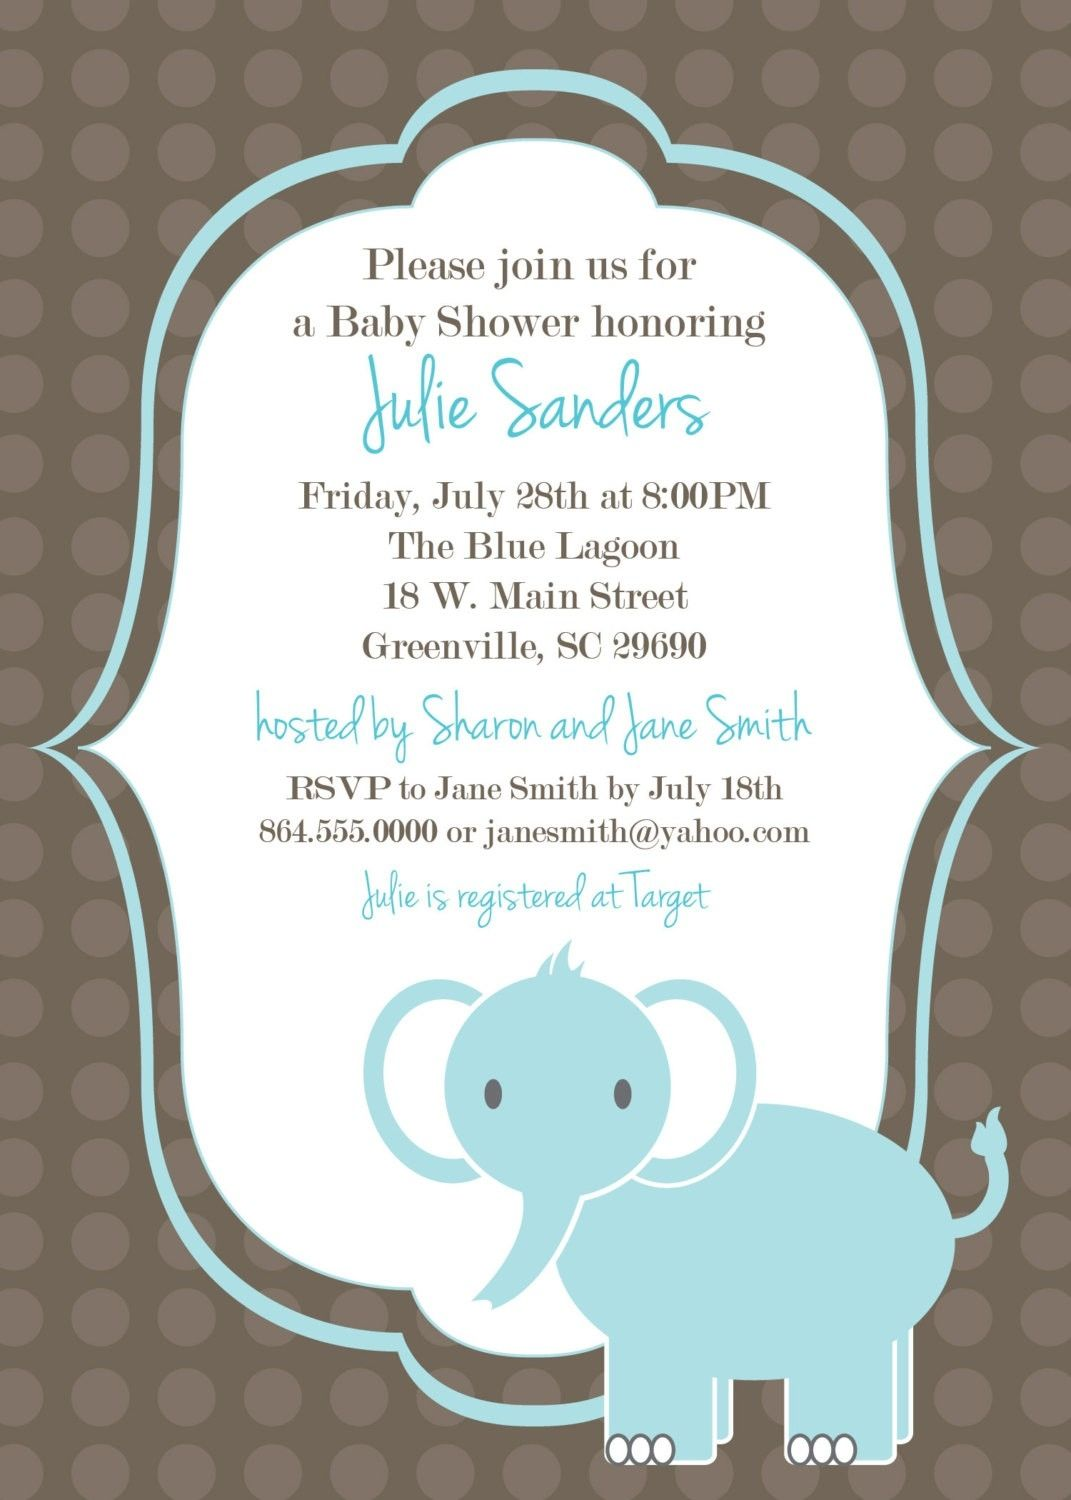 Baby Shower Invitations For Word Templates Fair Download Baby Shower Invitation Templates Word  Setup  Pinterest .